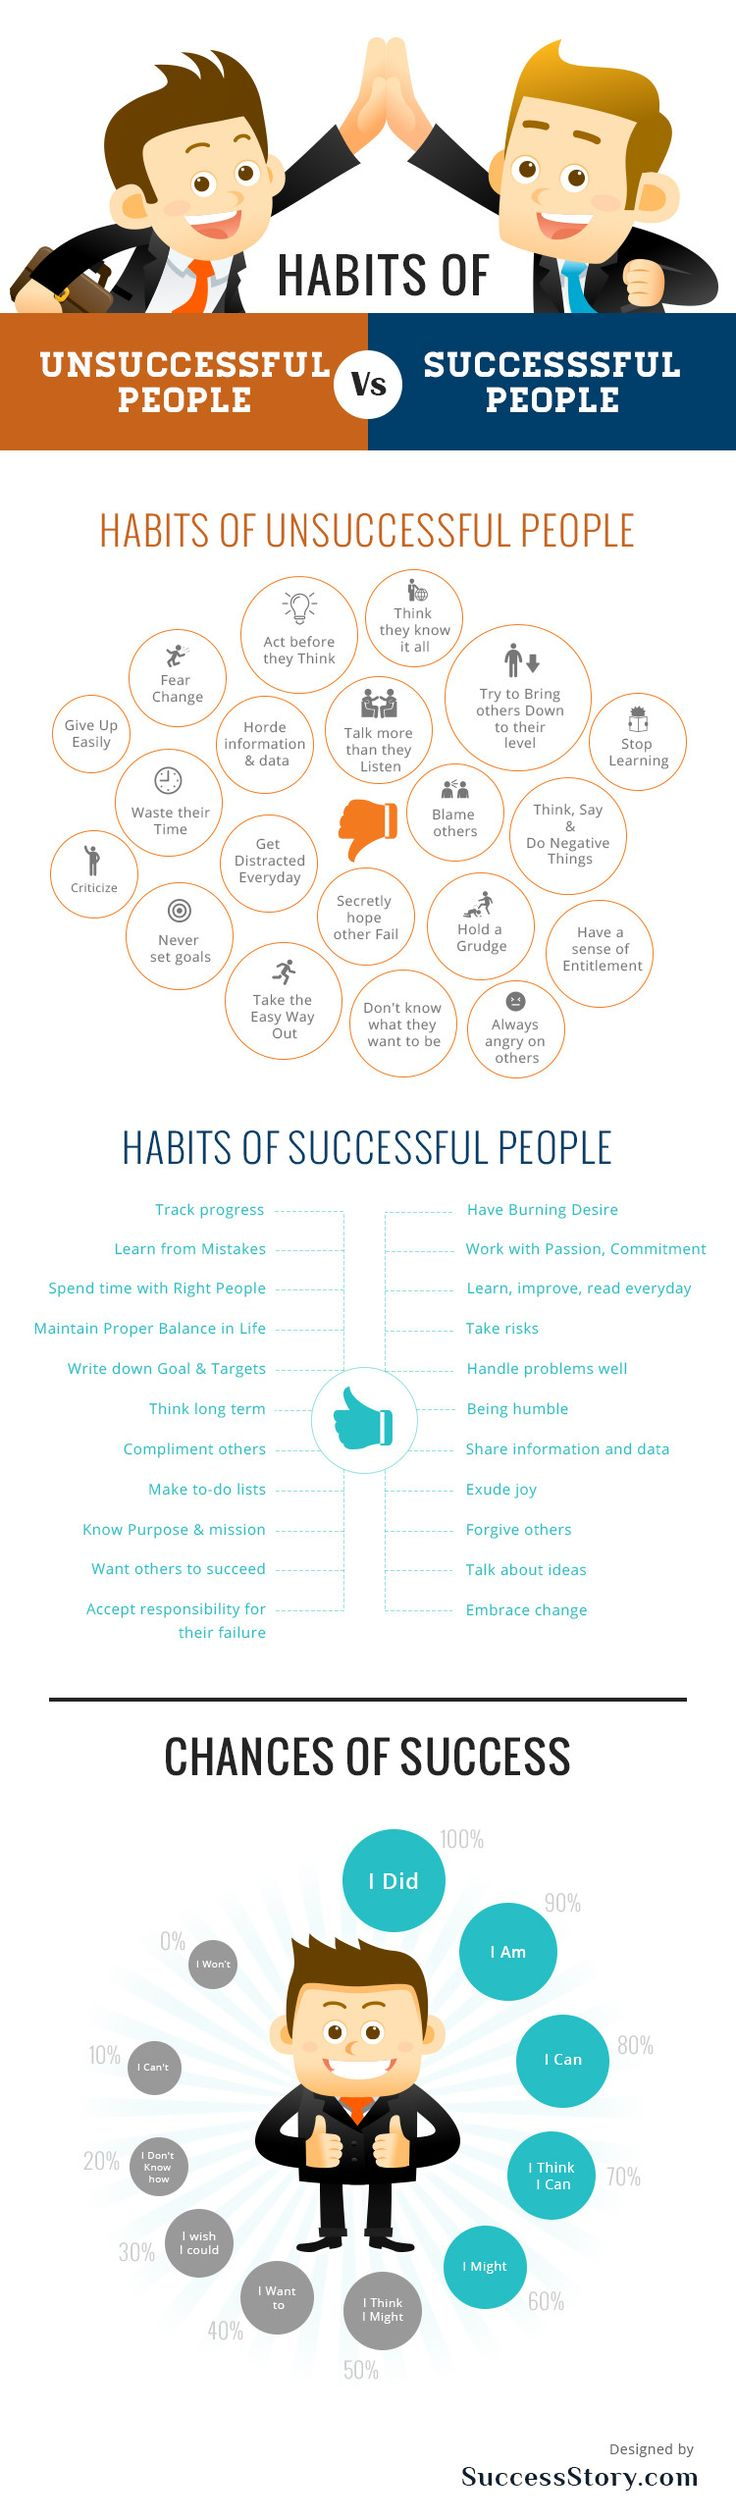 Habits of Unsuccessful People Vs Successful People - Success Story